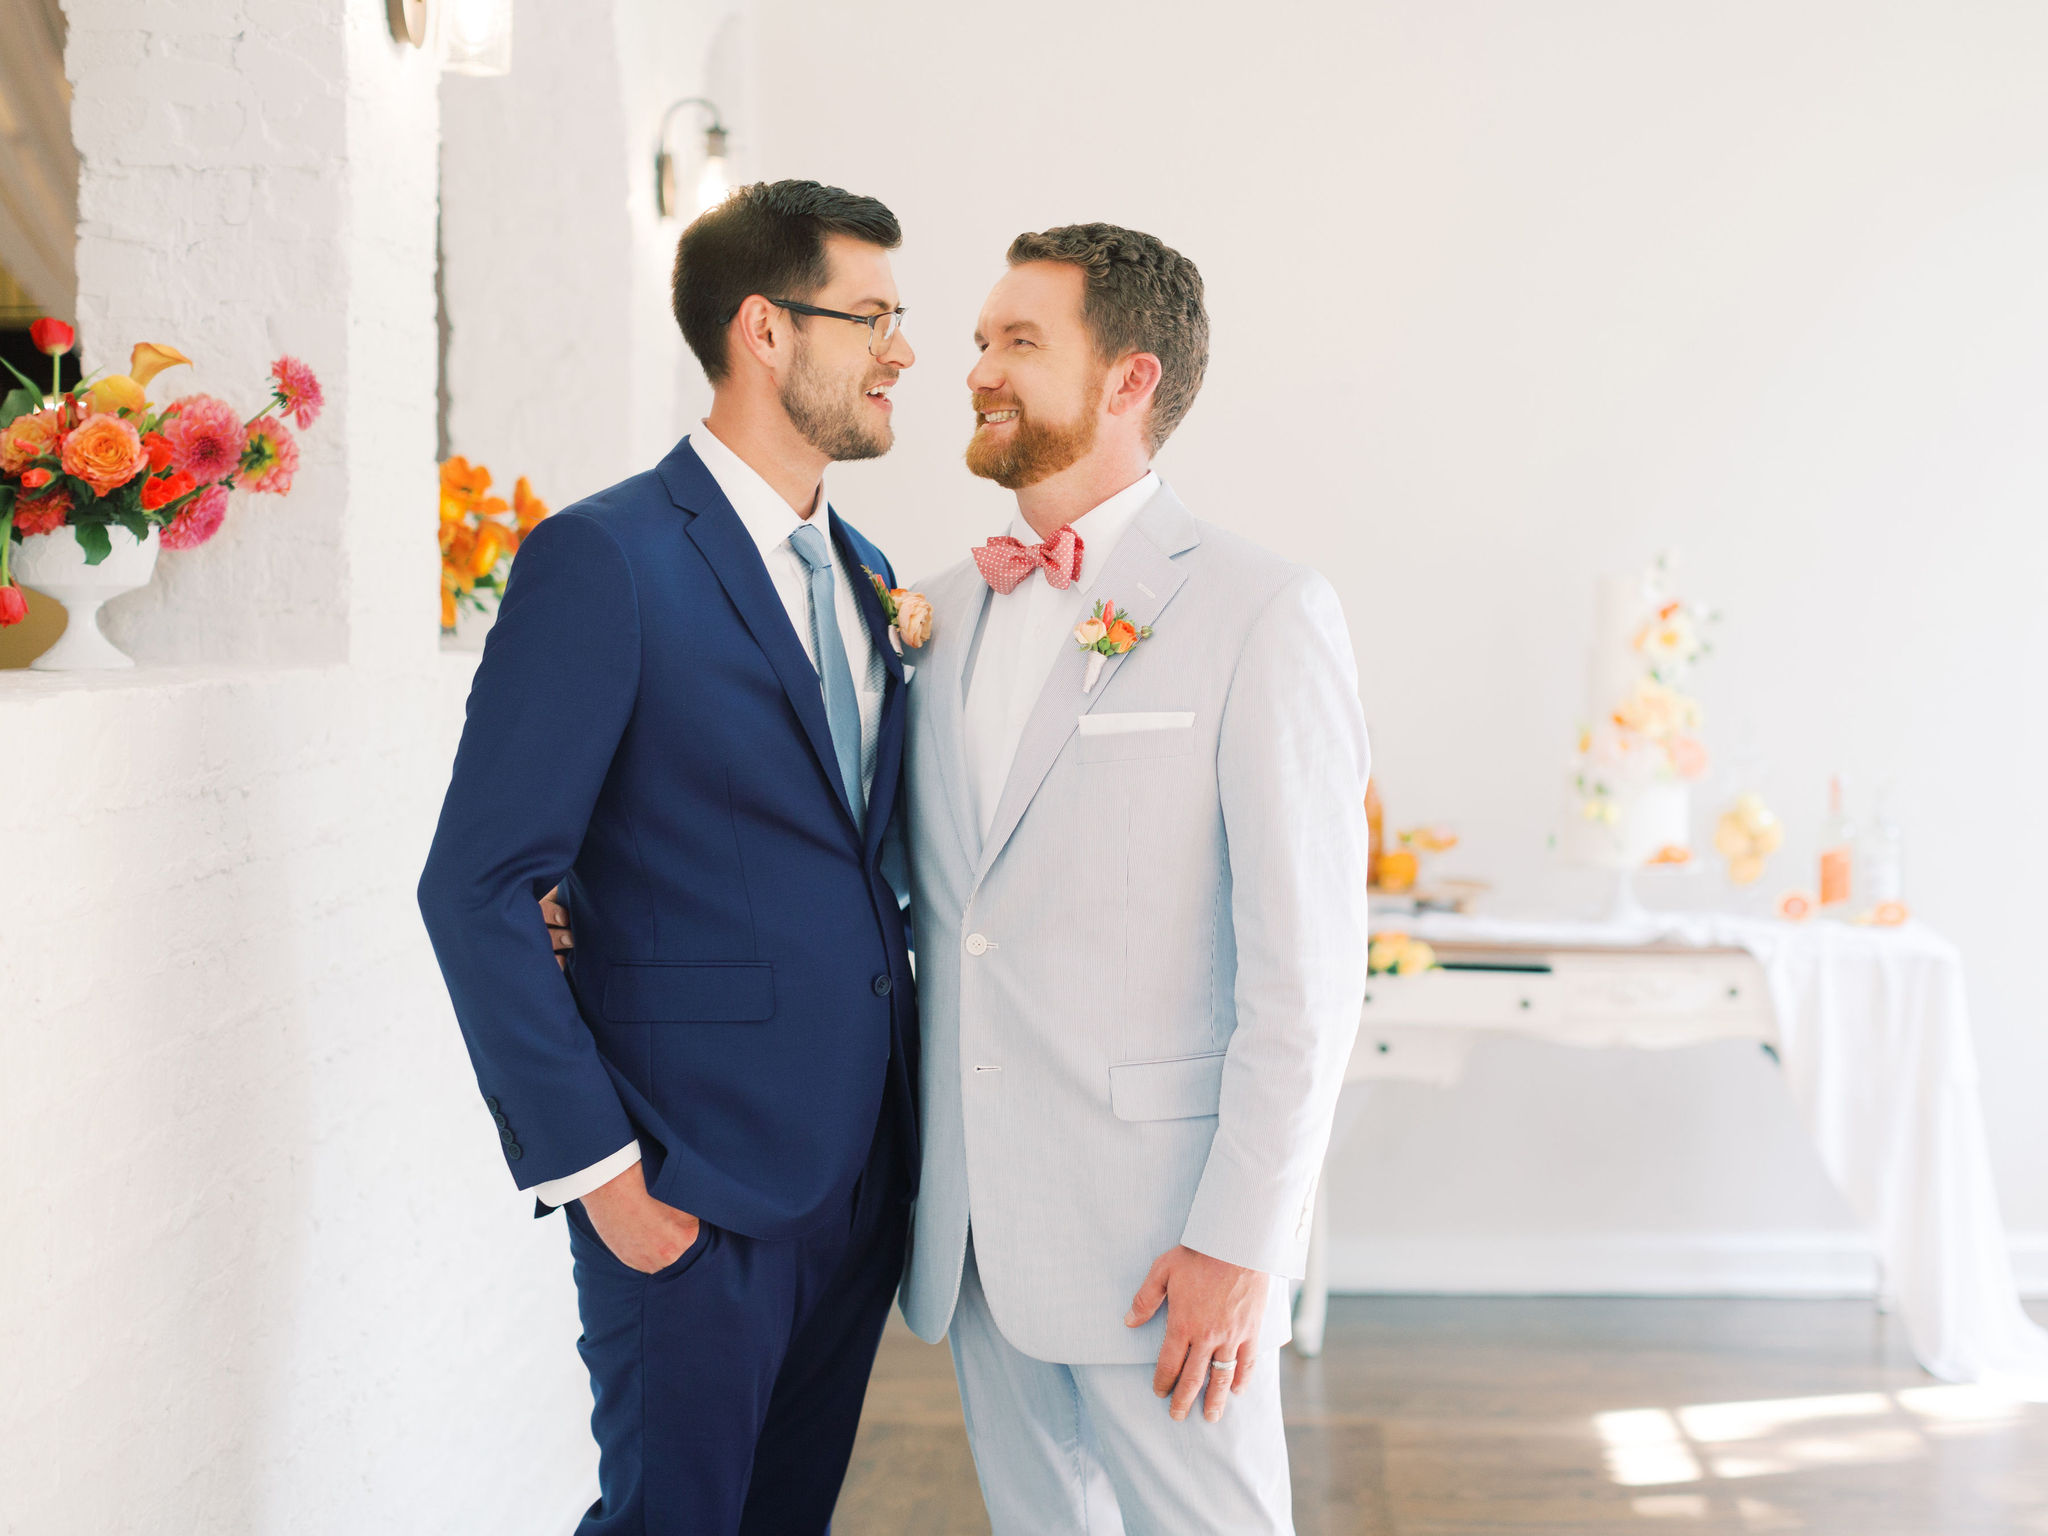 Guys Wedding Fashion for Same Sex